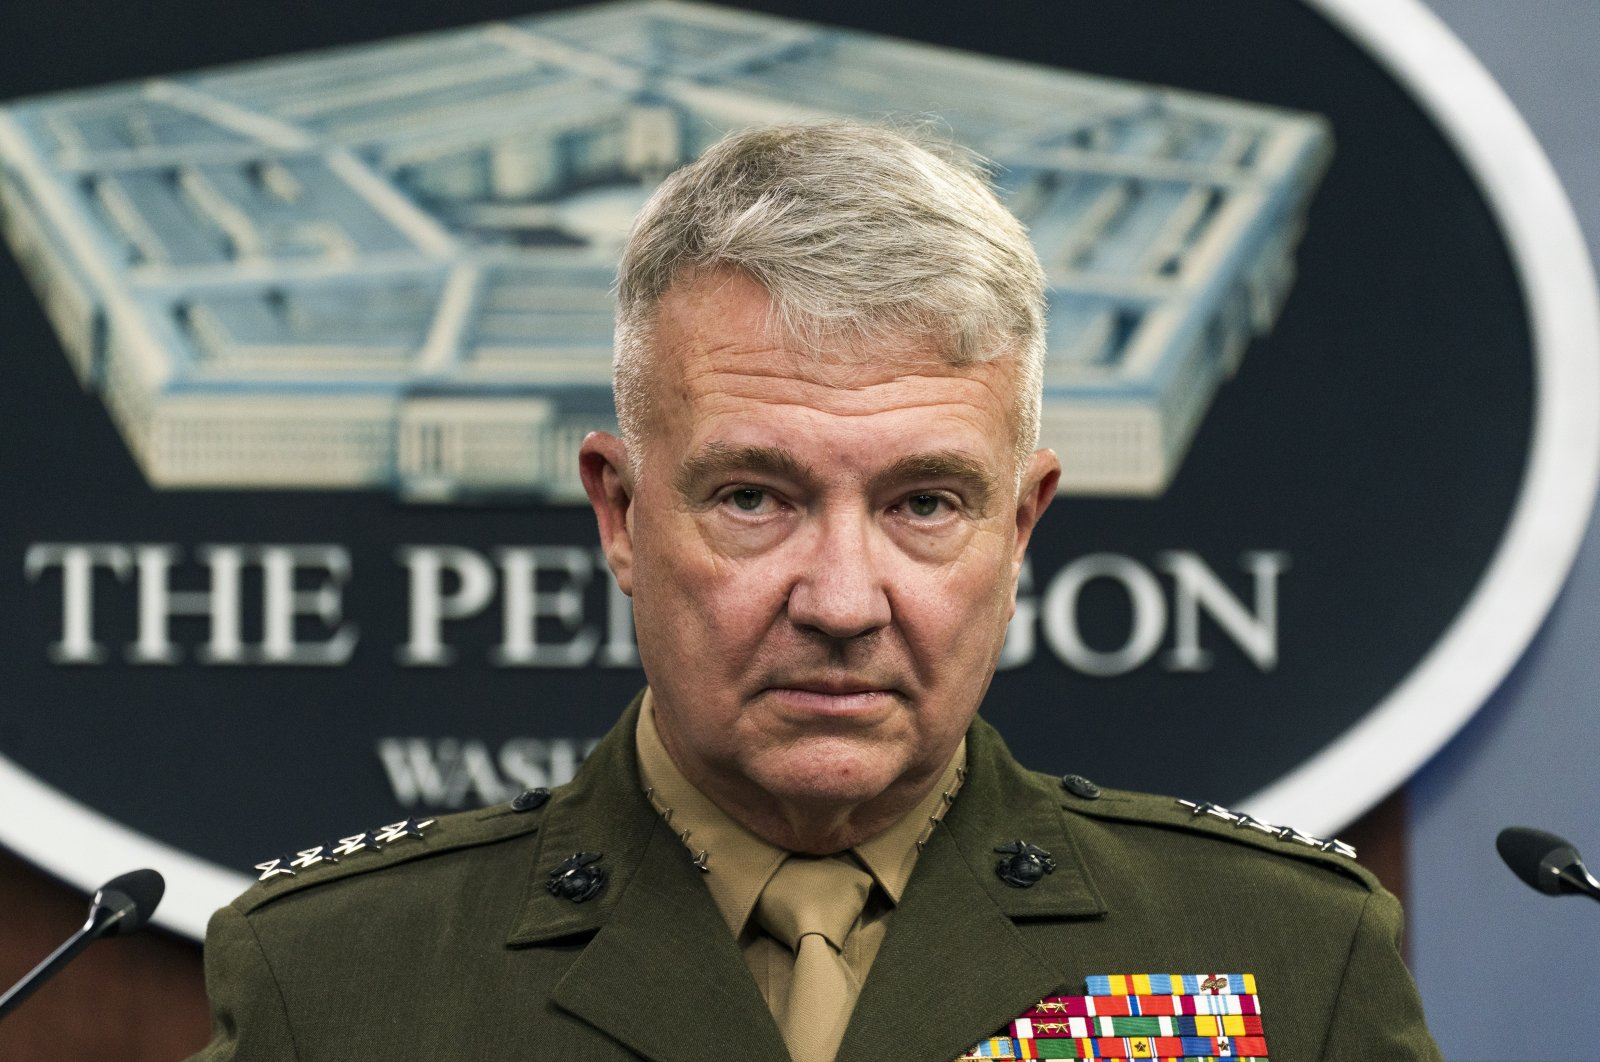 Gen. Frank McKenzie, commander of the United States Central Command, speaks during a briefing at the Pentagon in Washington, D.C., U.S., April 22, 2021. (AP File Photo)